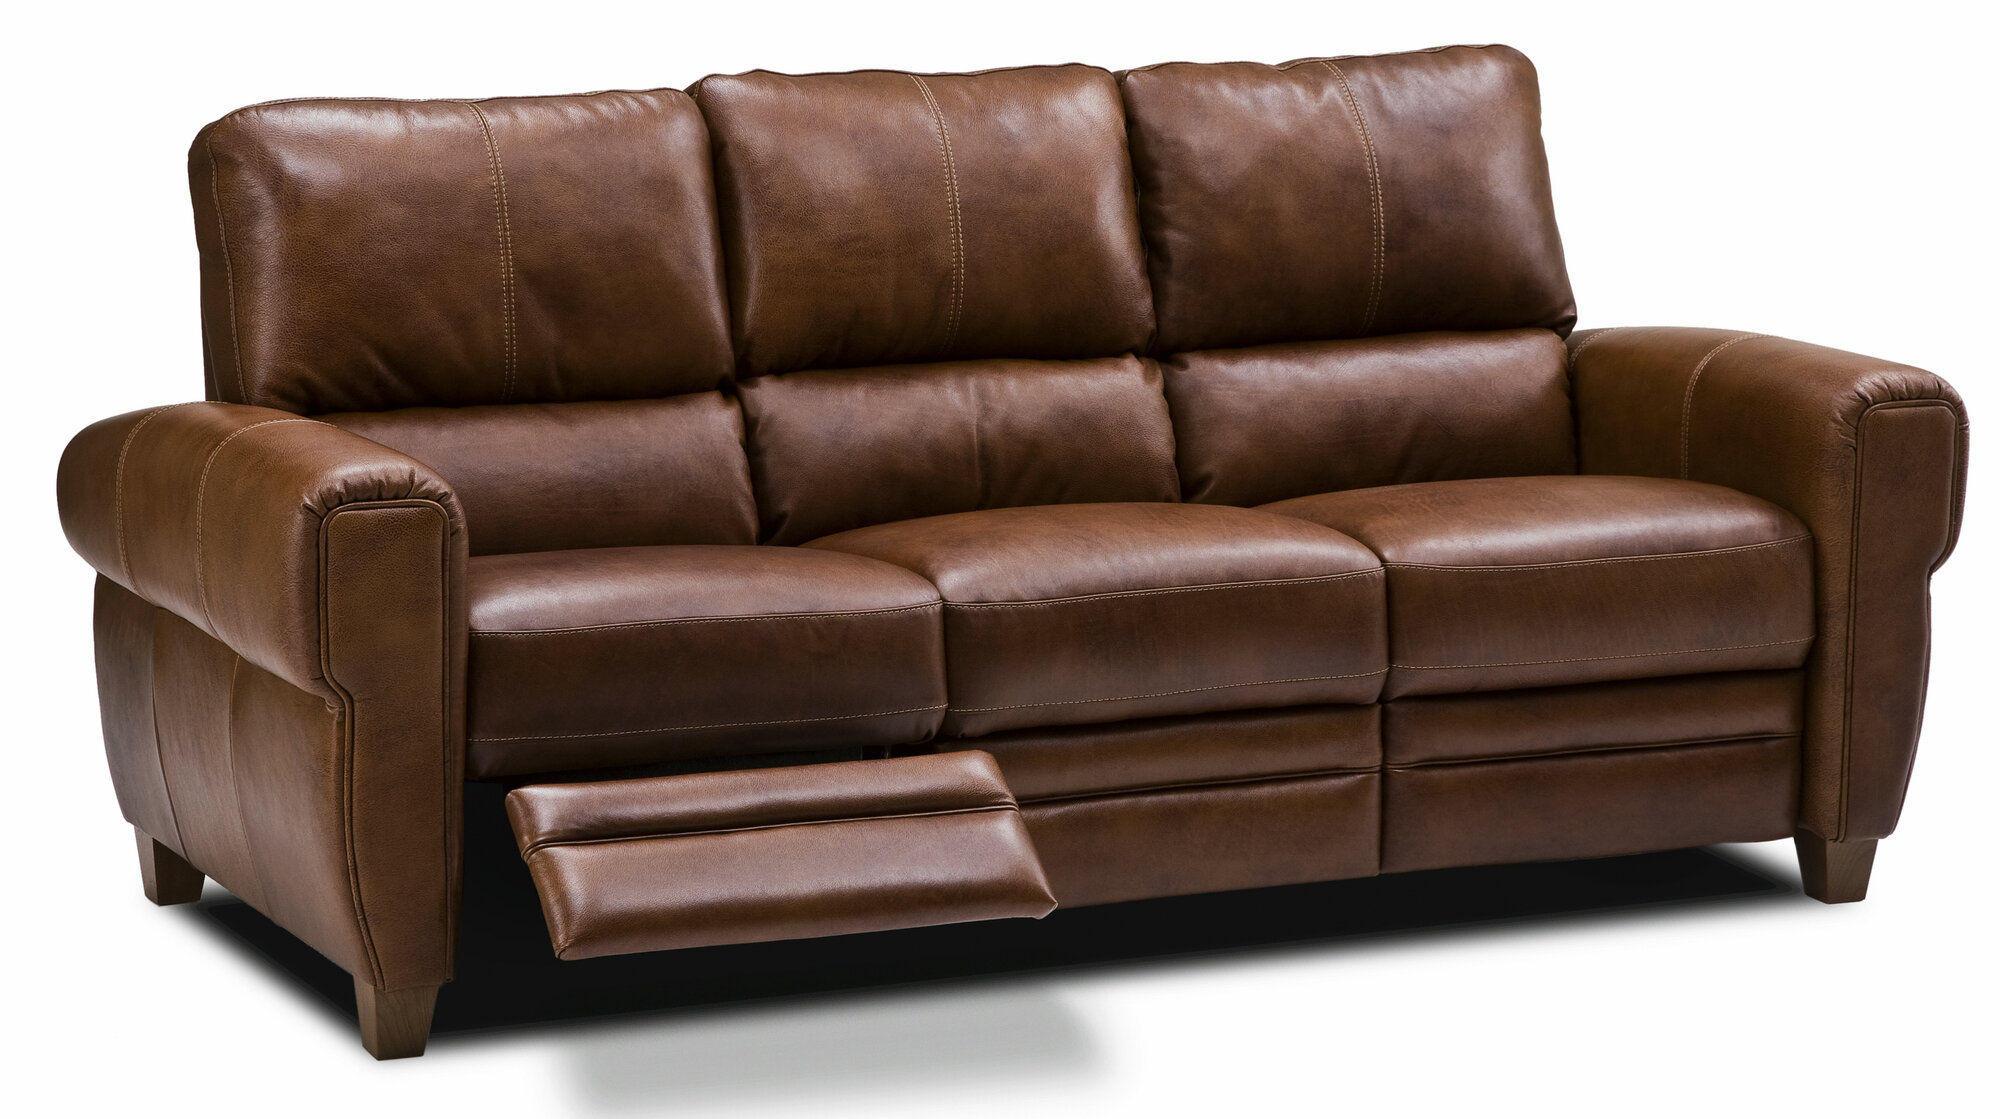 Recliner couches living room ideas Leather loveseat recliners